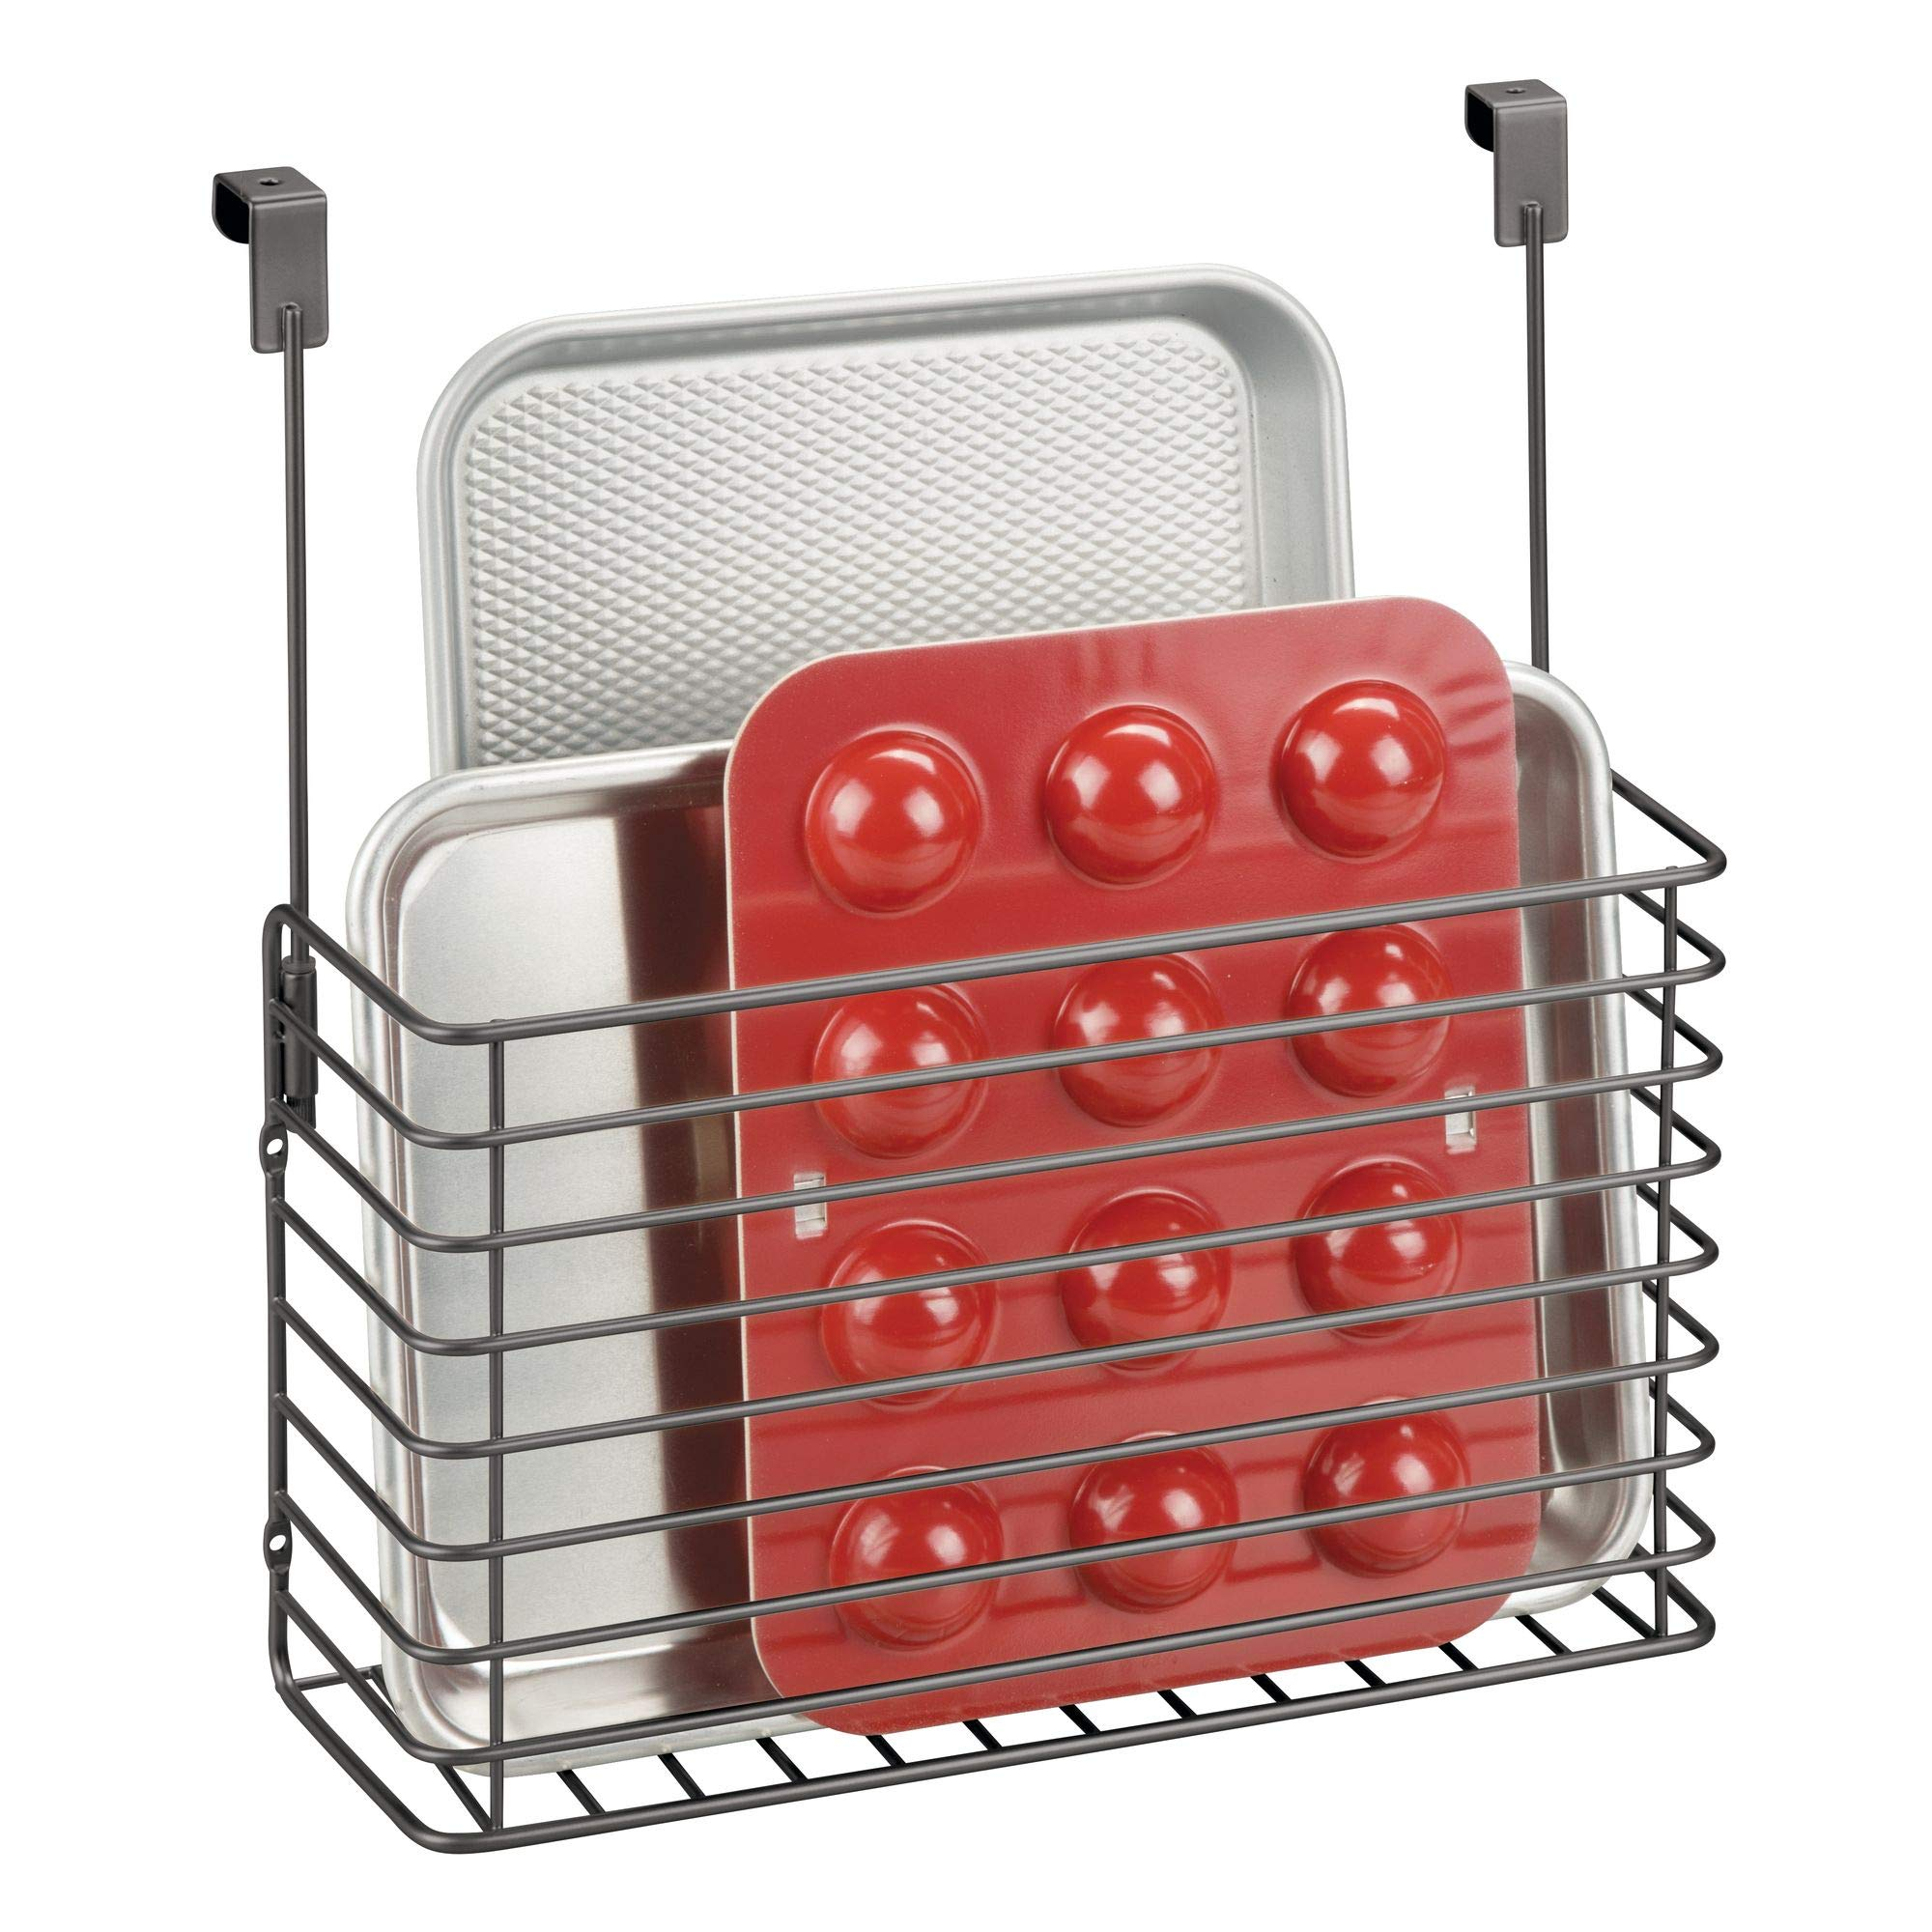 mDesign Metal Over Cabinet Kitchen Storage Organizer Holder or Basket - Hang Over Cabinet Doors in Kitchen/Pantry - Holds Bakeware, Cookbook, Cleaning Supplies - Steel Wire in Graphite Gray Finish